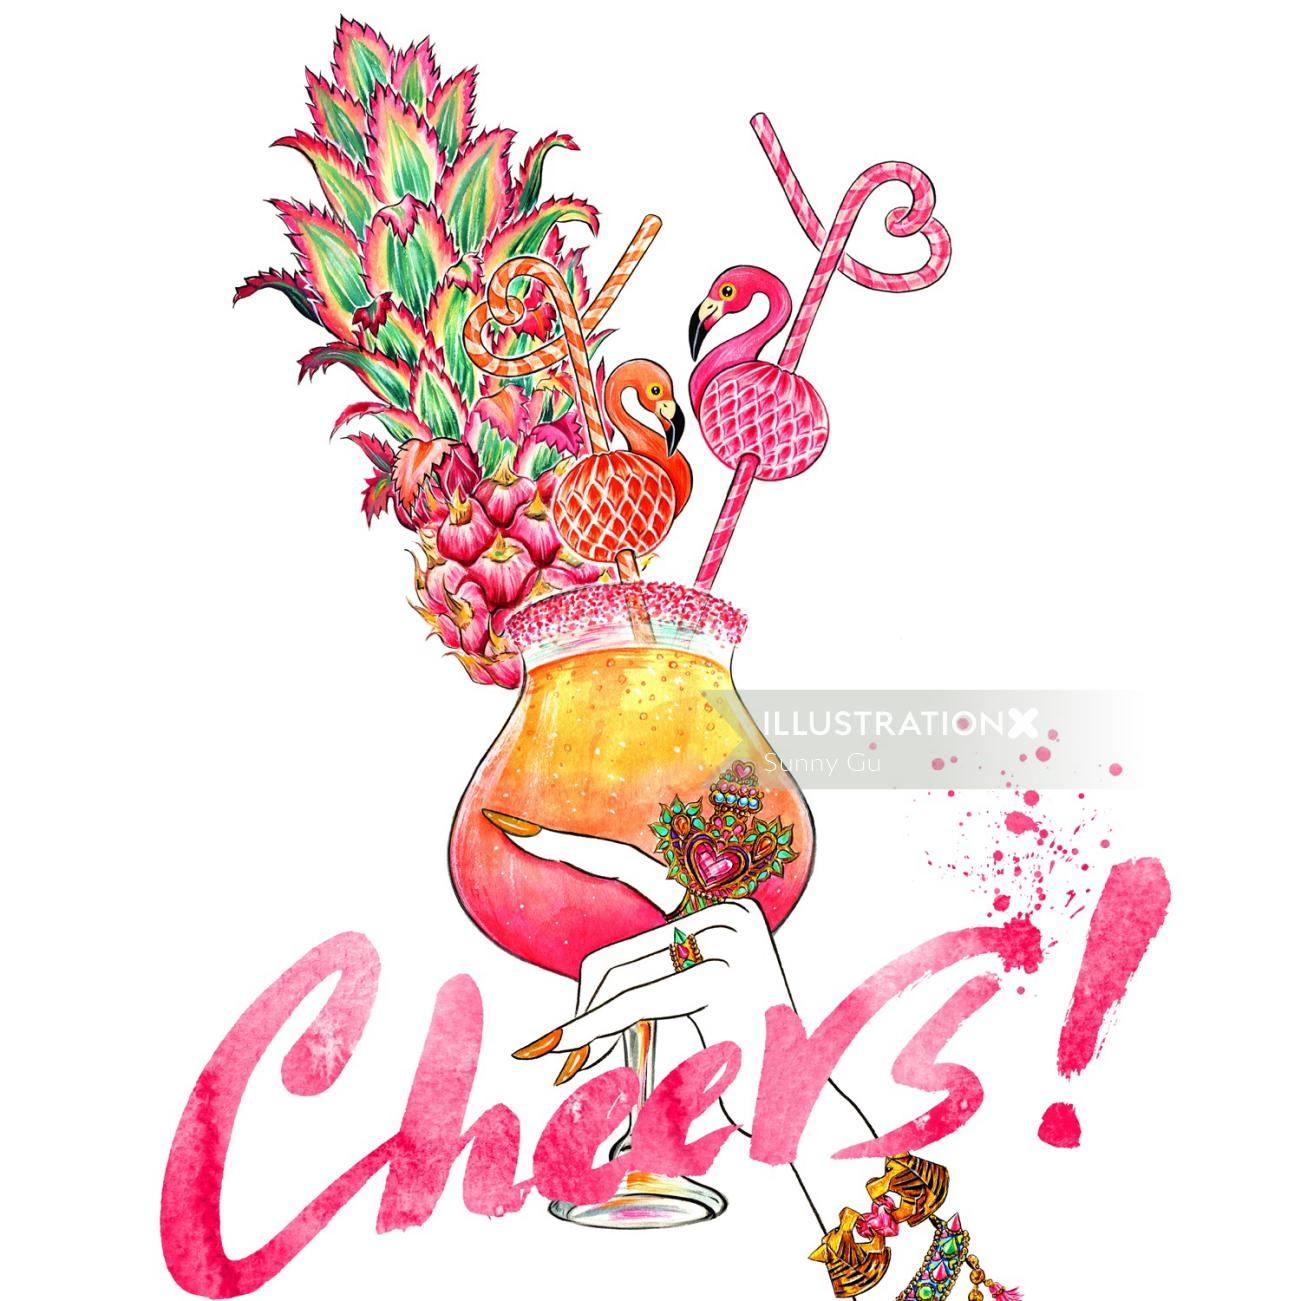 Jewelry, Accessory, Summer, Poolside, Summery Drink, flamingo, love, cheers, pineapple, cocktail